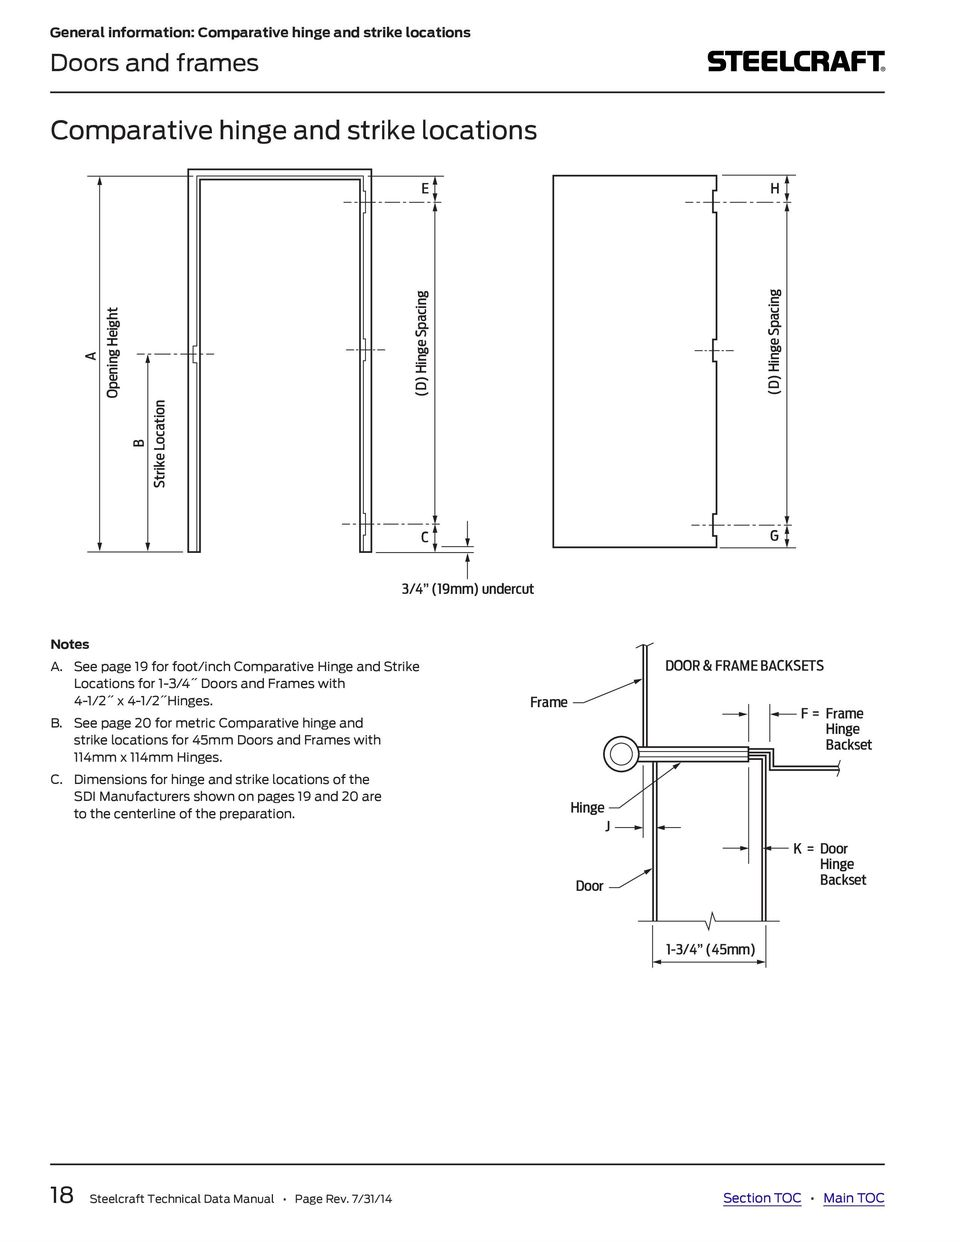 Doors and frames. Technical data manual 2015 rev. 8/17/15 - PDF